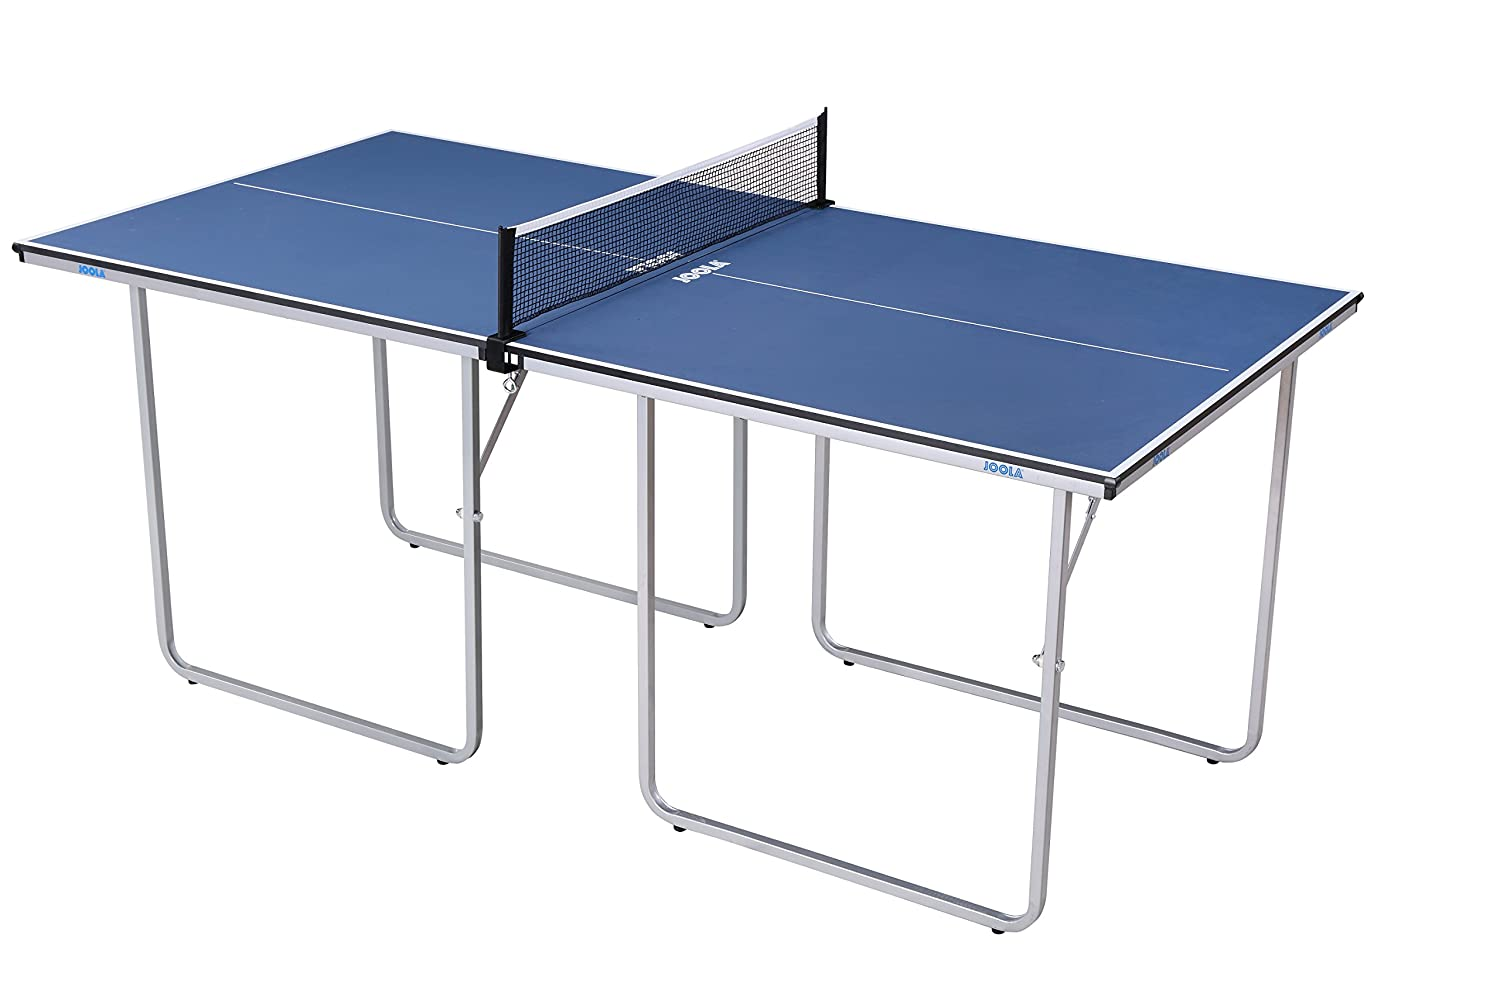 JOOLA Midsize Compact Table Tennis Table Great for Small Spaces and Apartments